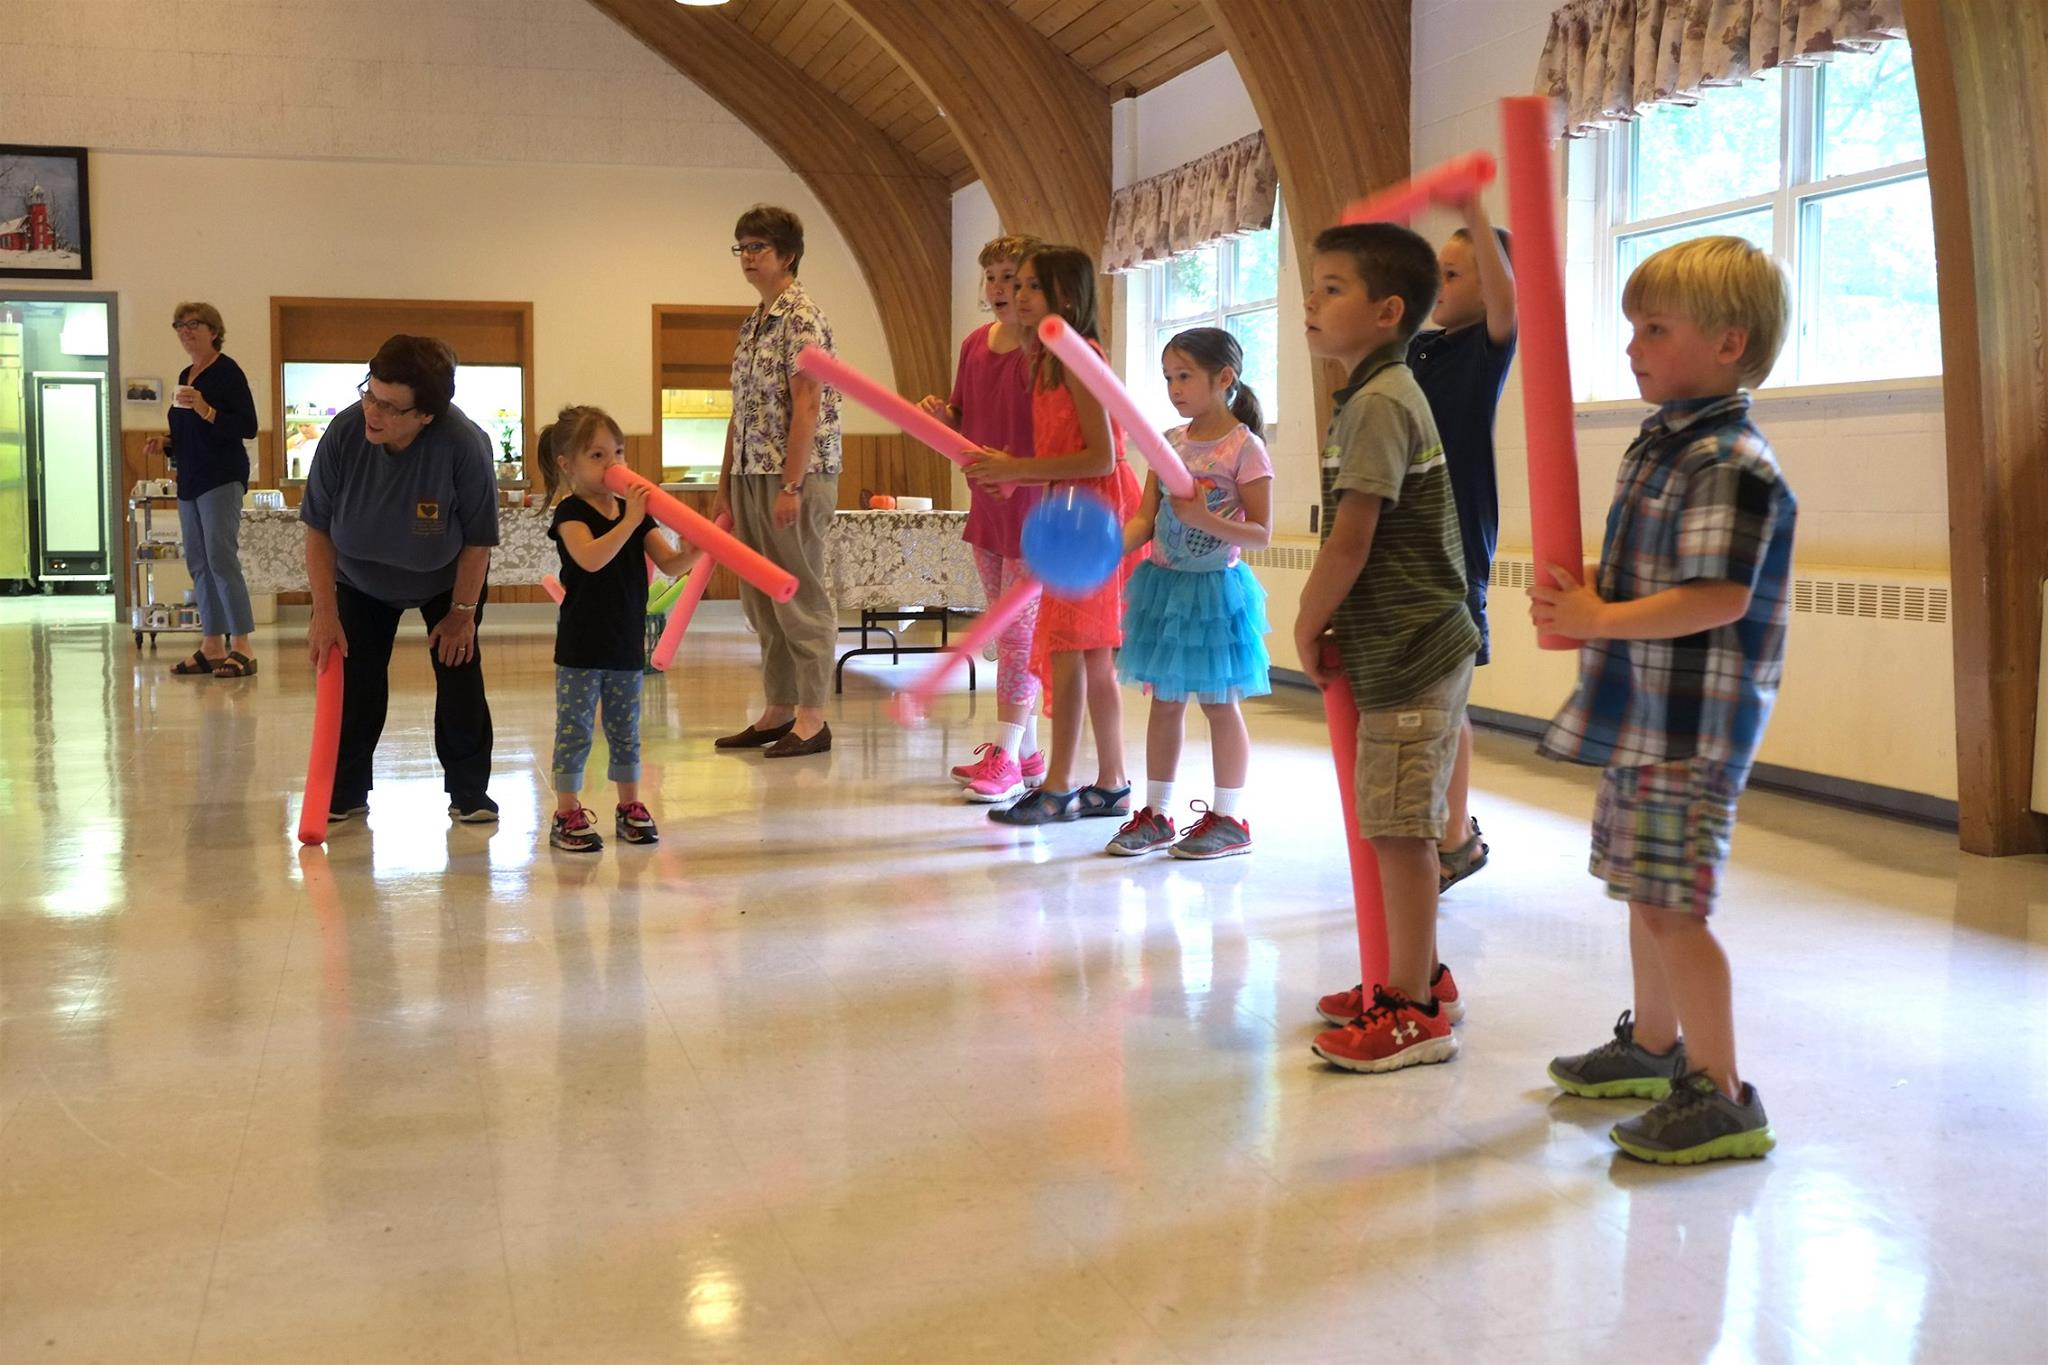 Reformed church of claverack Sunday school fun